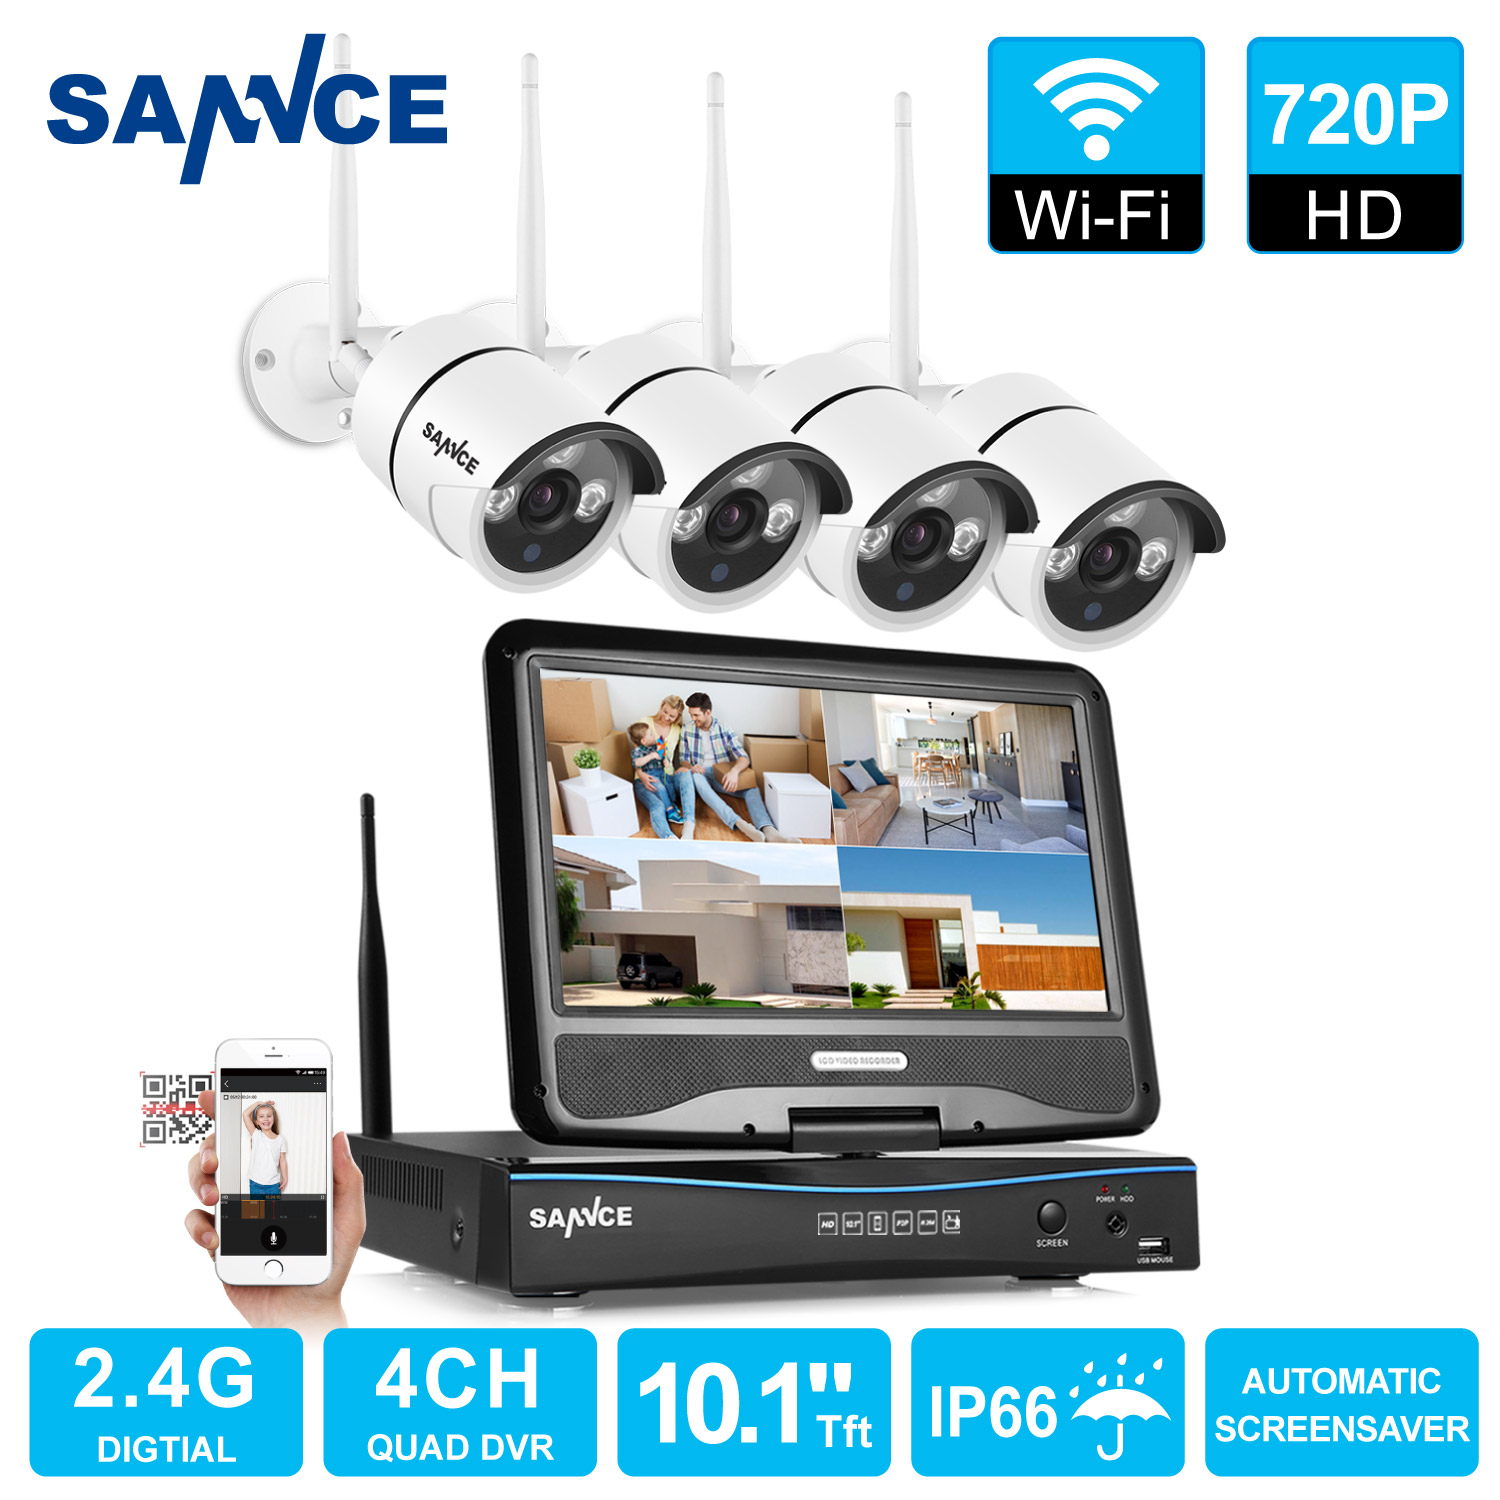 SANNCE 4CH 720P WIFI CCTV System HDMI NVR With 10.1'' LCD Screen 4PCS 1.0 MP IR Outdoor P2P Wireless IP Camera Security System Surveillance Kit(0-NO HDD,1-1TB HDD)